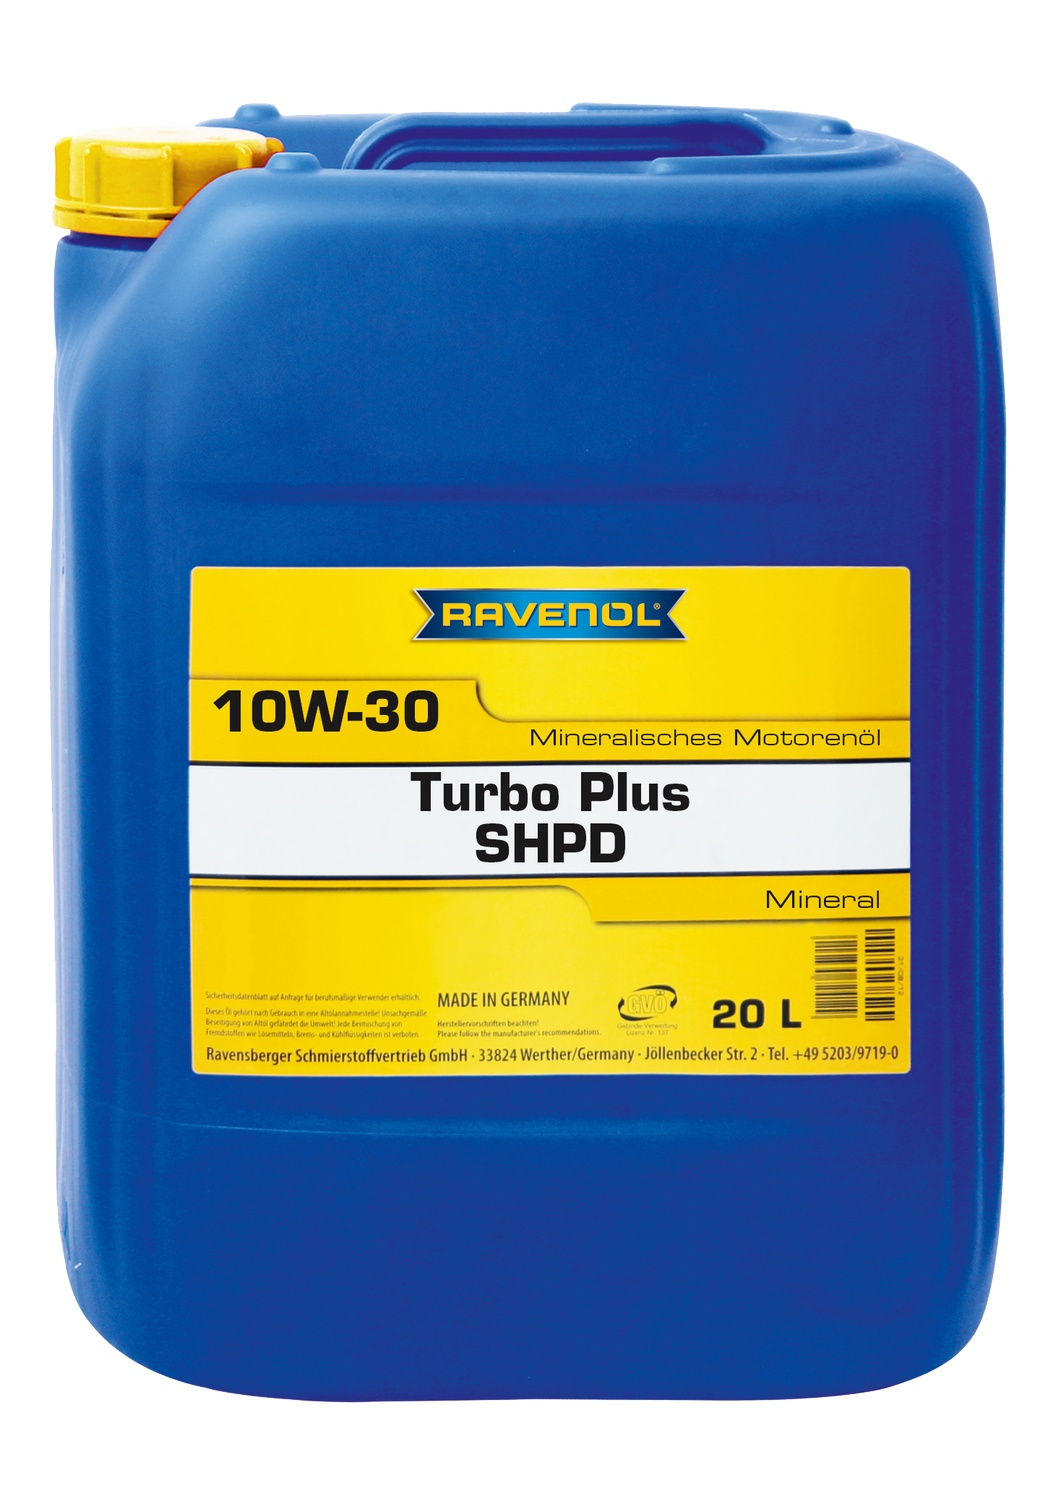 Turbo Plus SHPD 10W-30